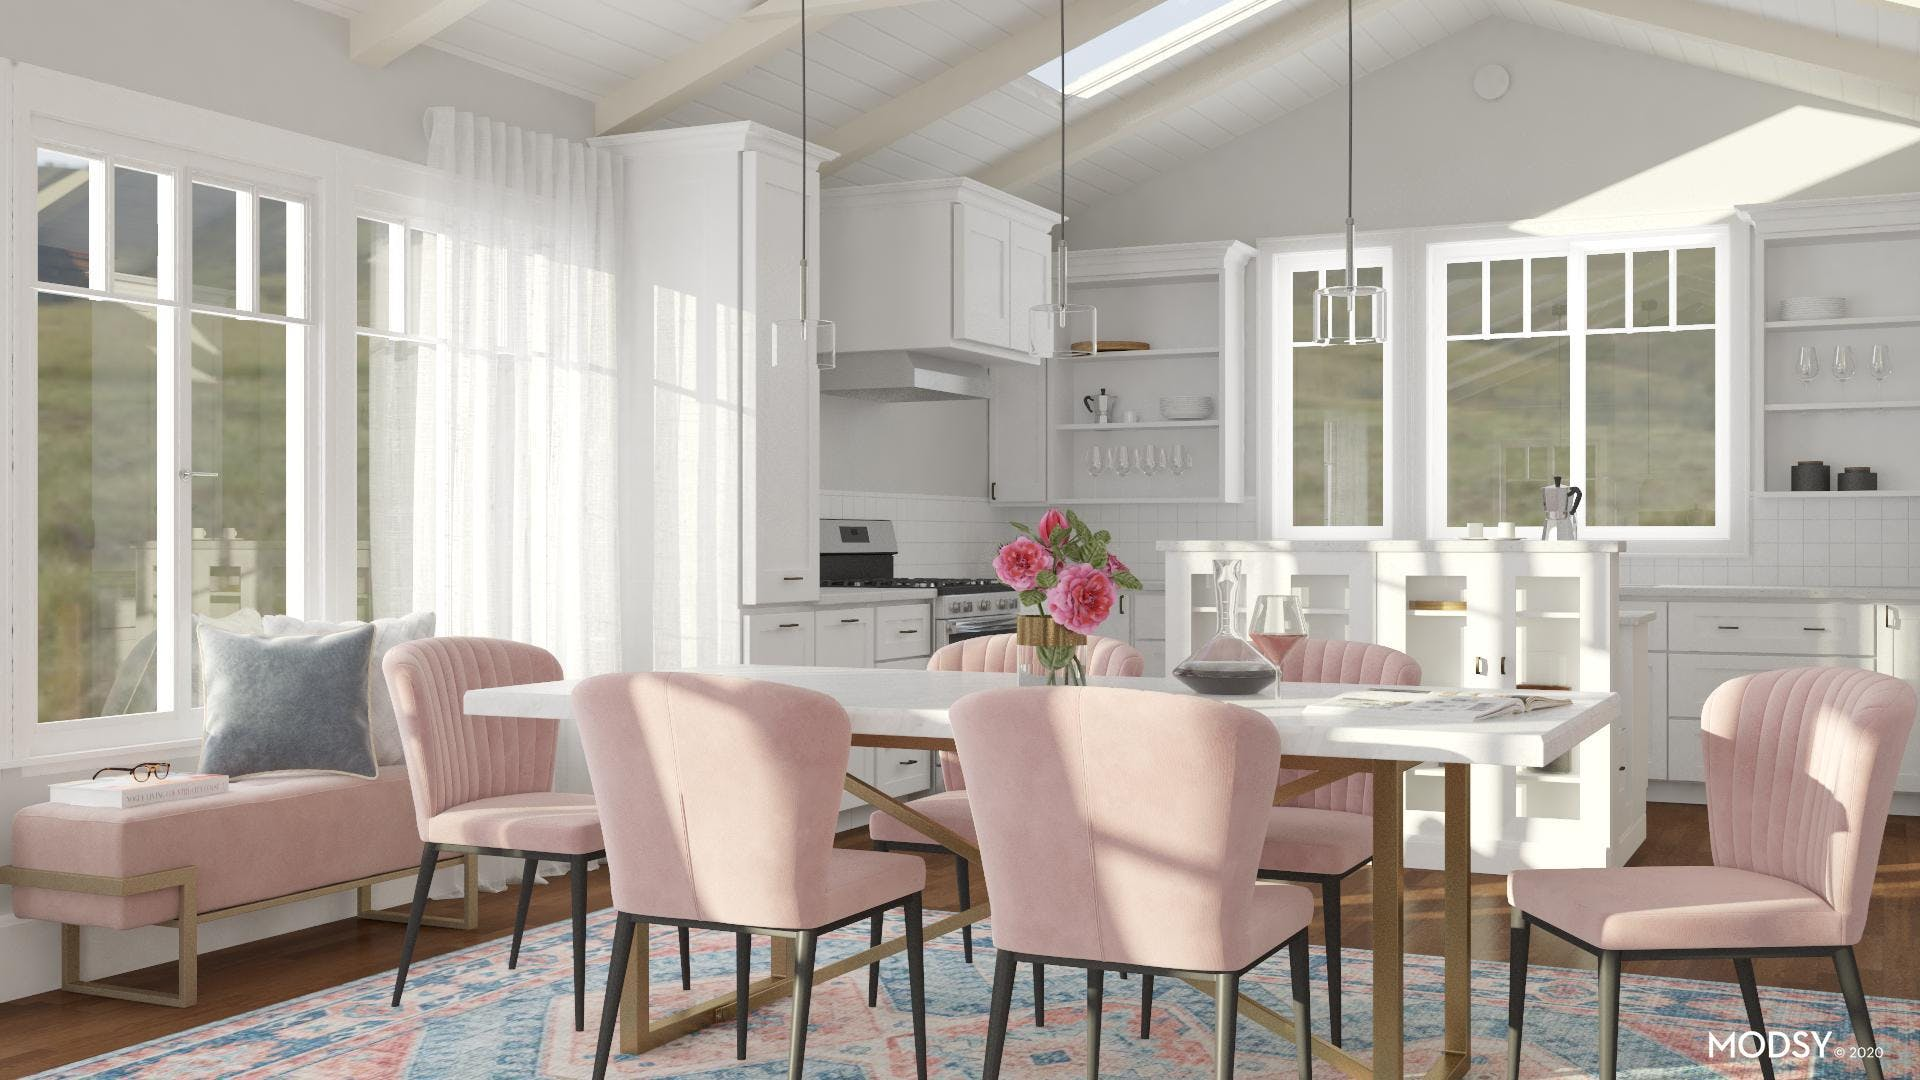 Dining Room In Pink? Yes Please!